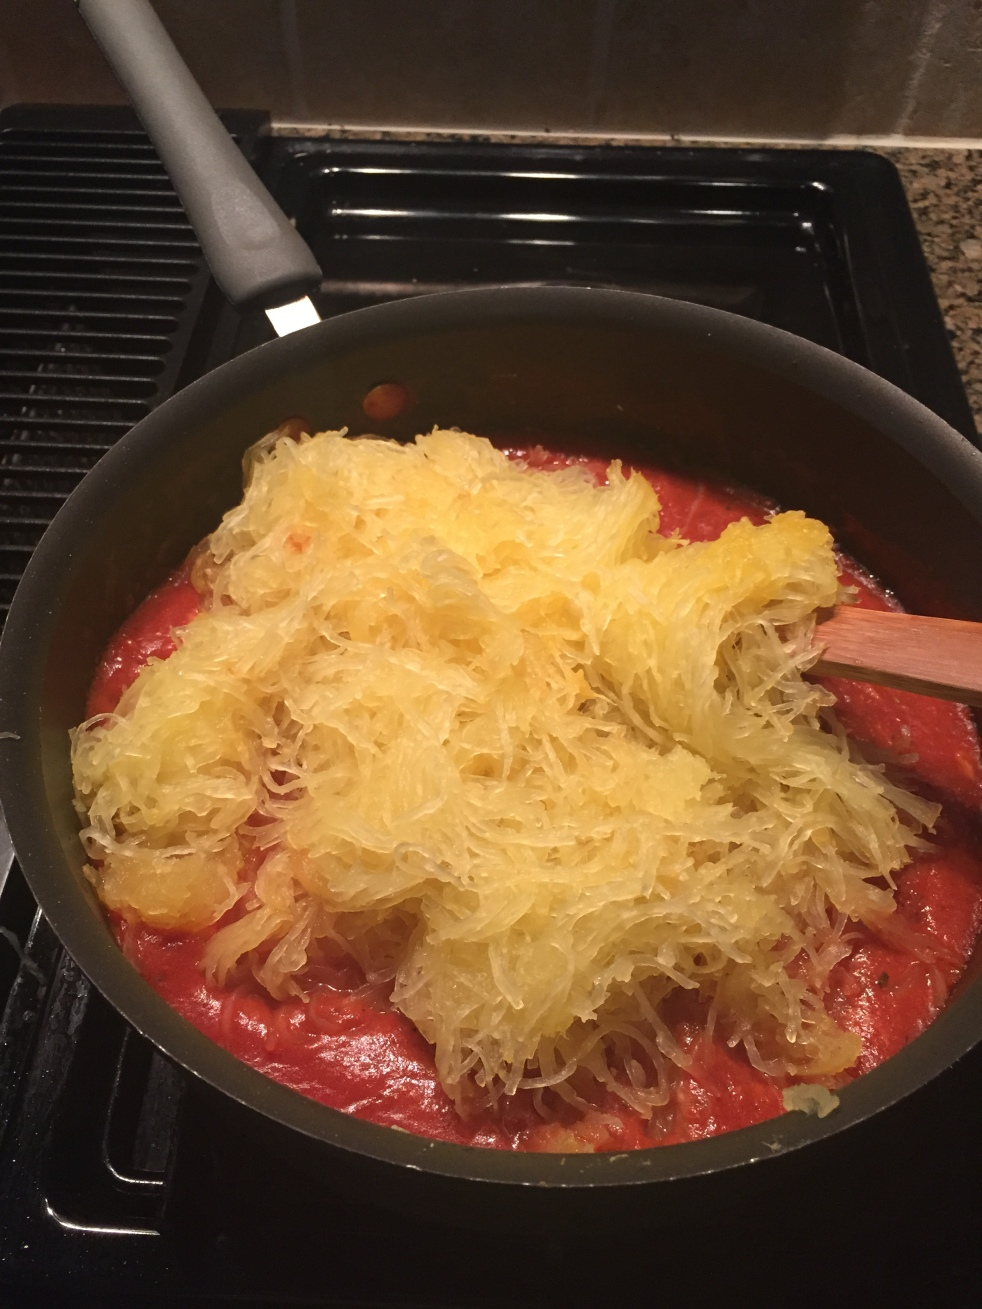 Spaghetti squash date night